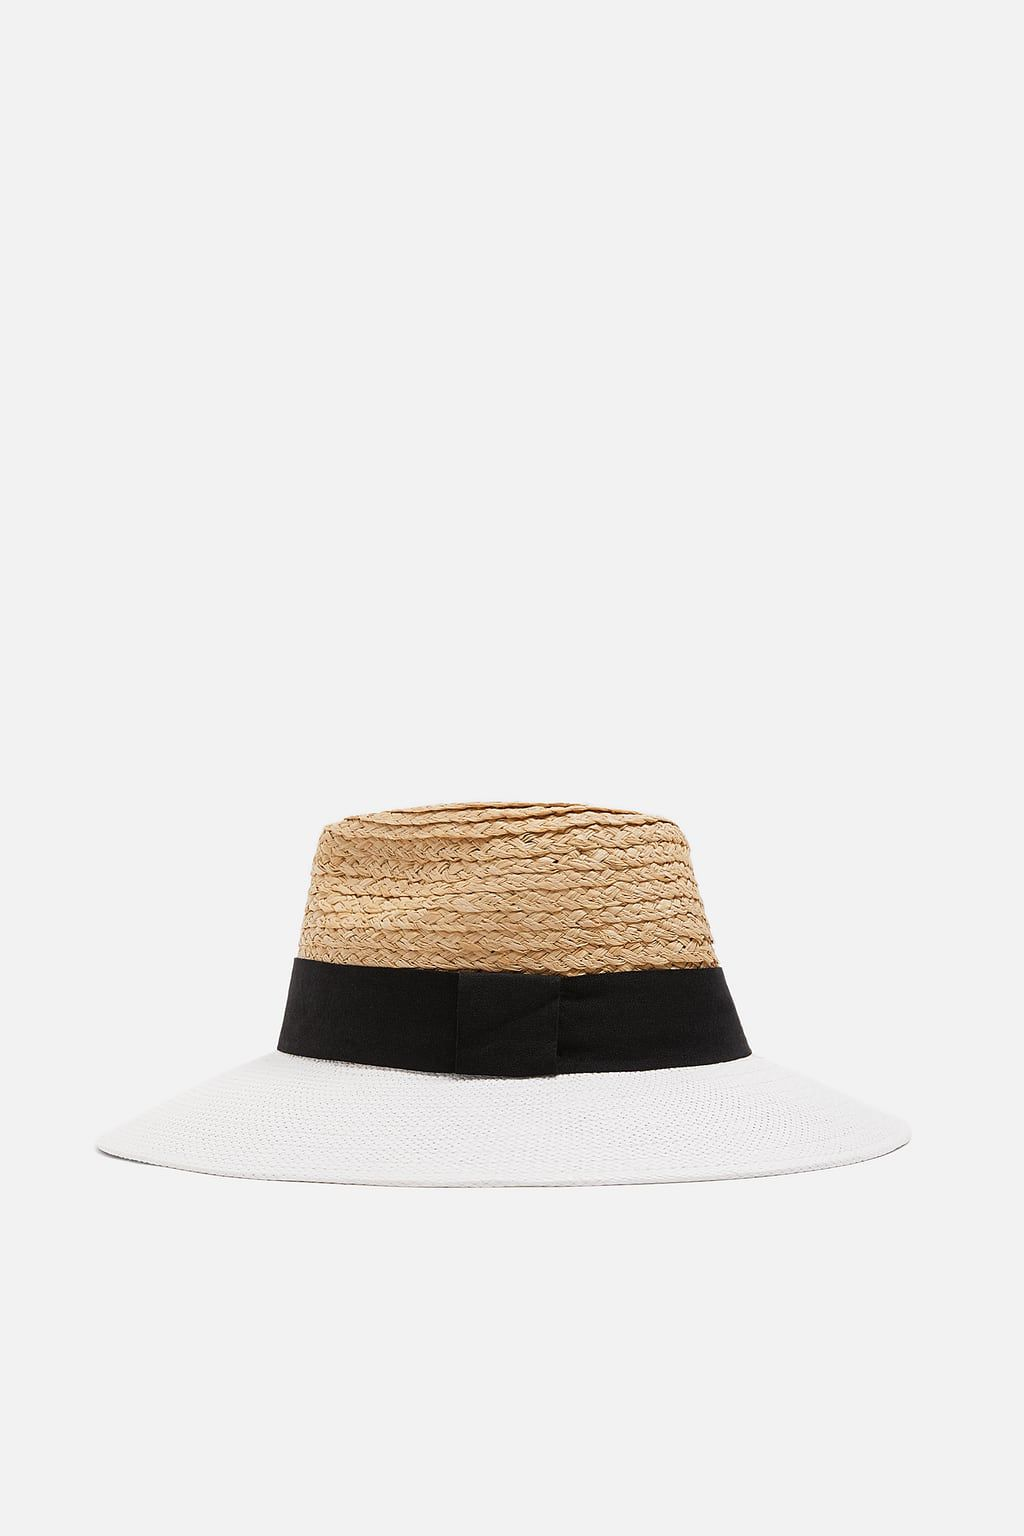 7e82dae5 Two-tone hat in 2019 | hats | Hats, Hats for women, Hair accessories ...